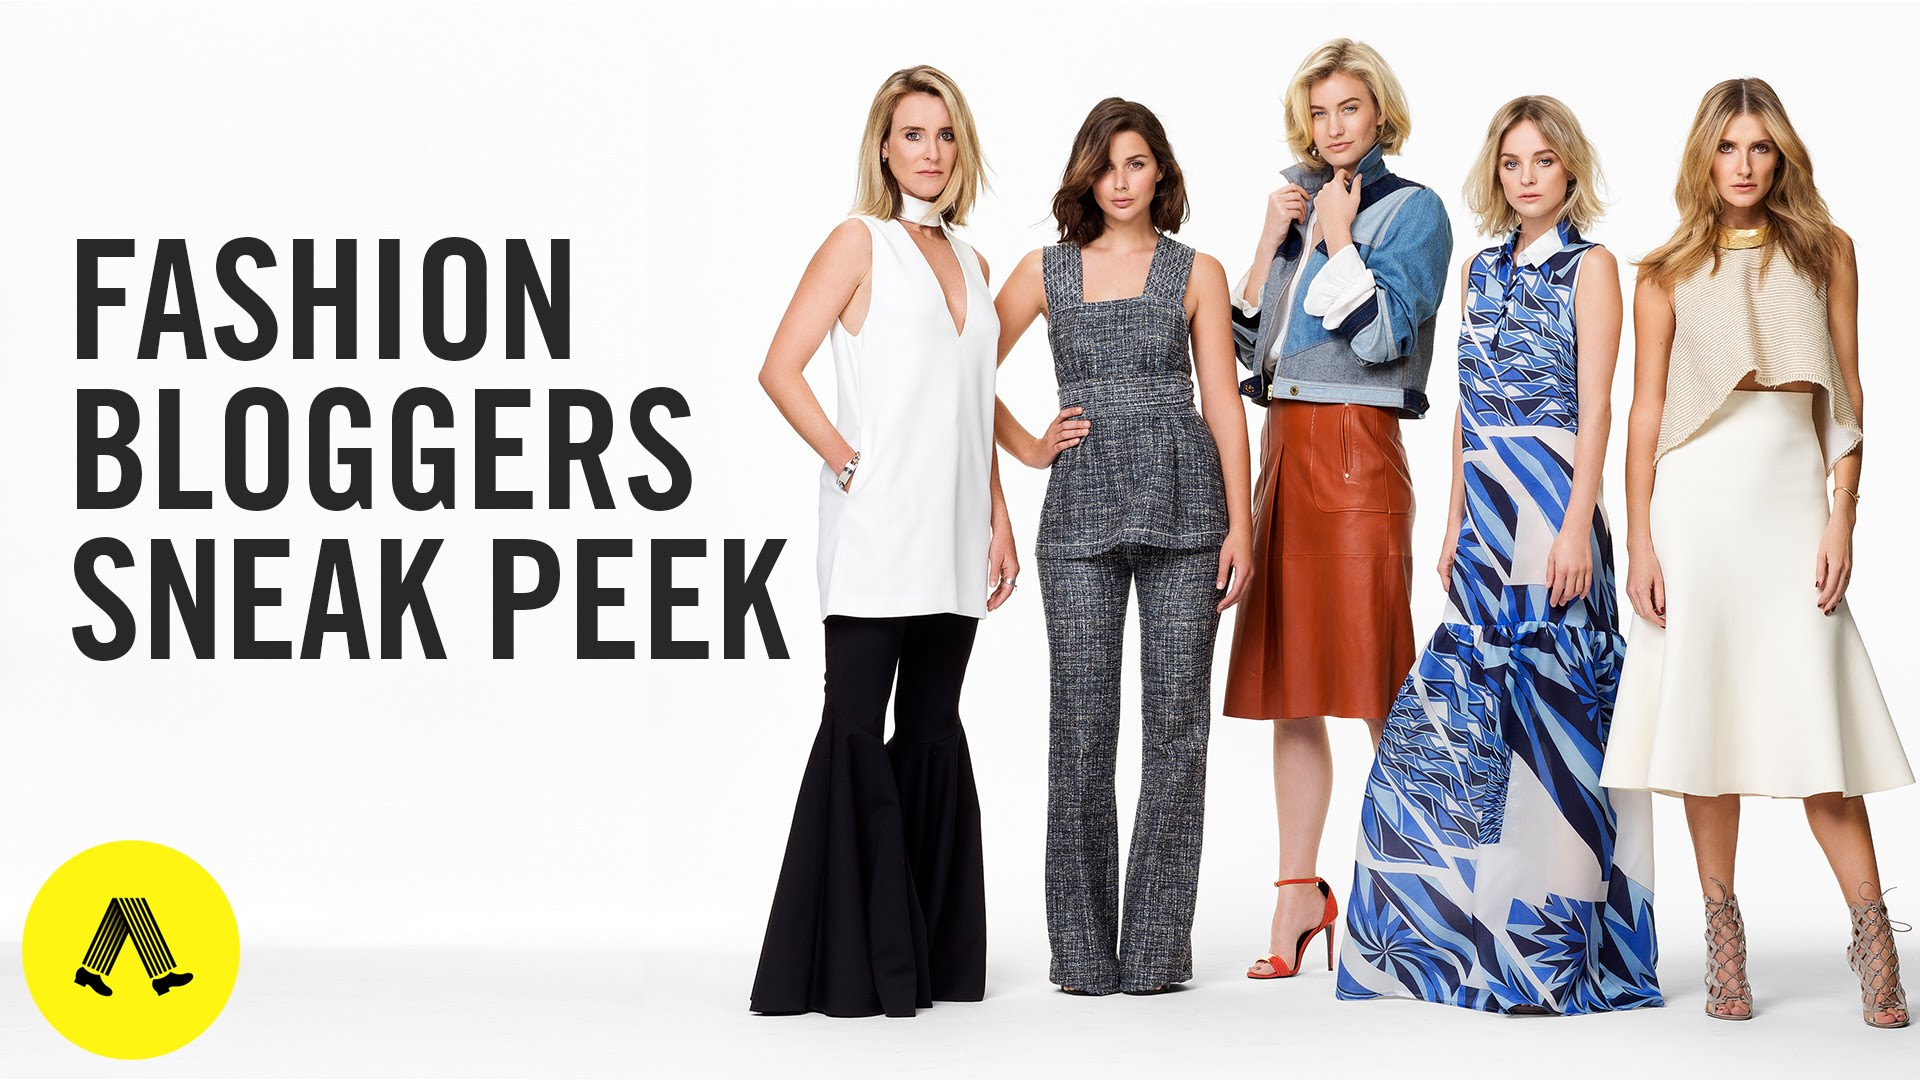 Fashion Bloggers: Season 2